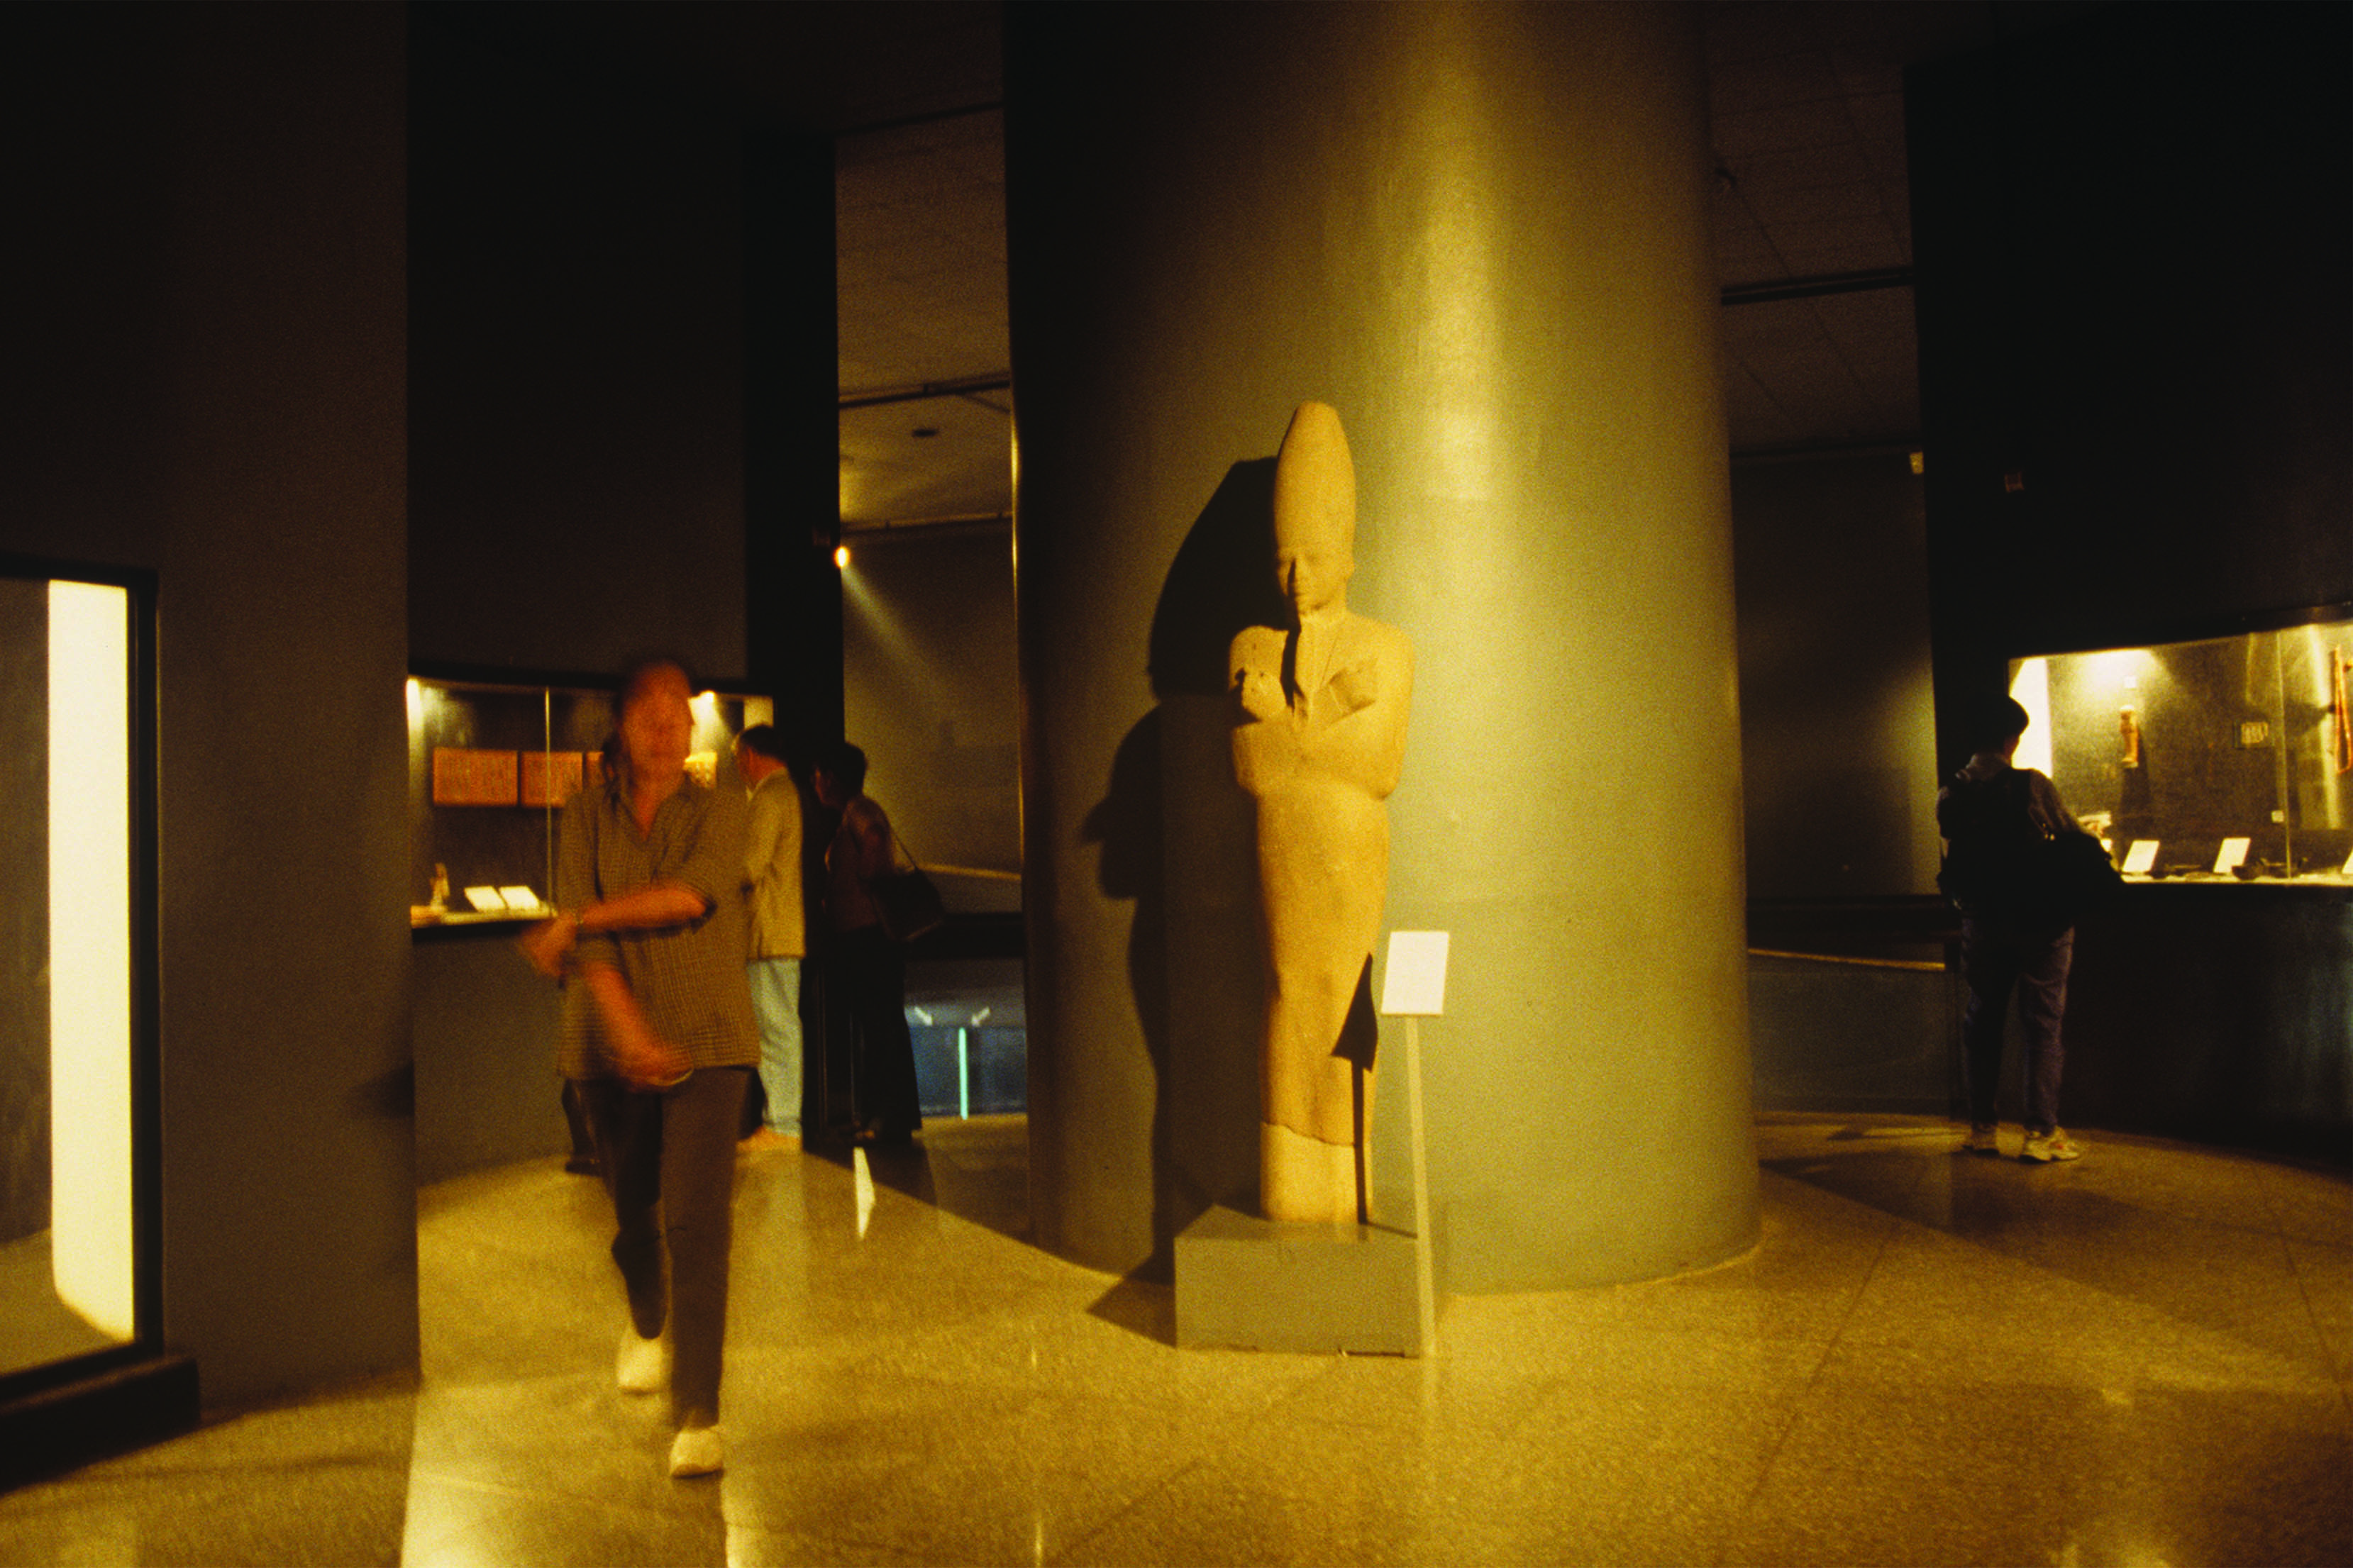 Behavioural Detection Analysis for museum security - City Security